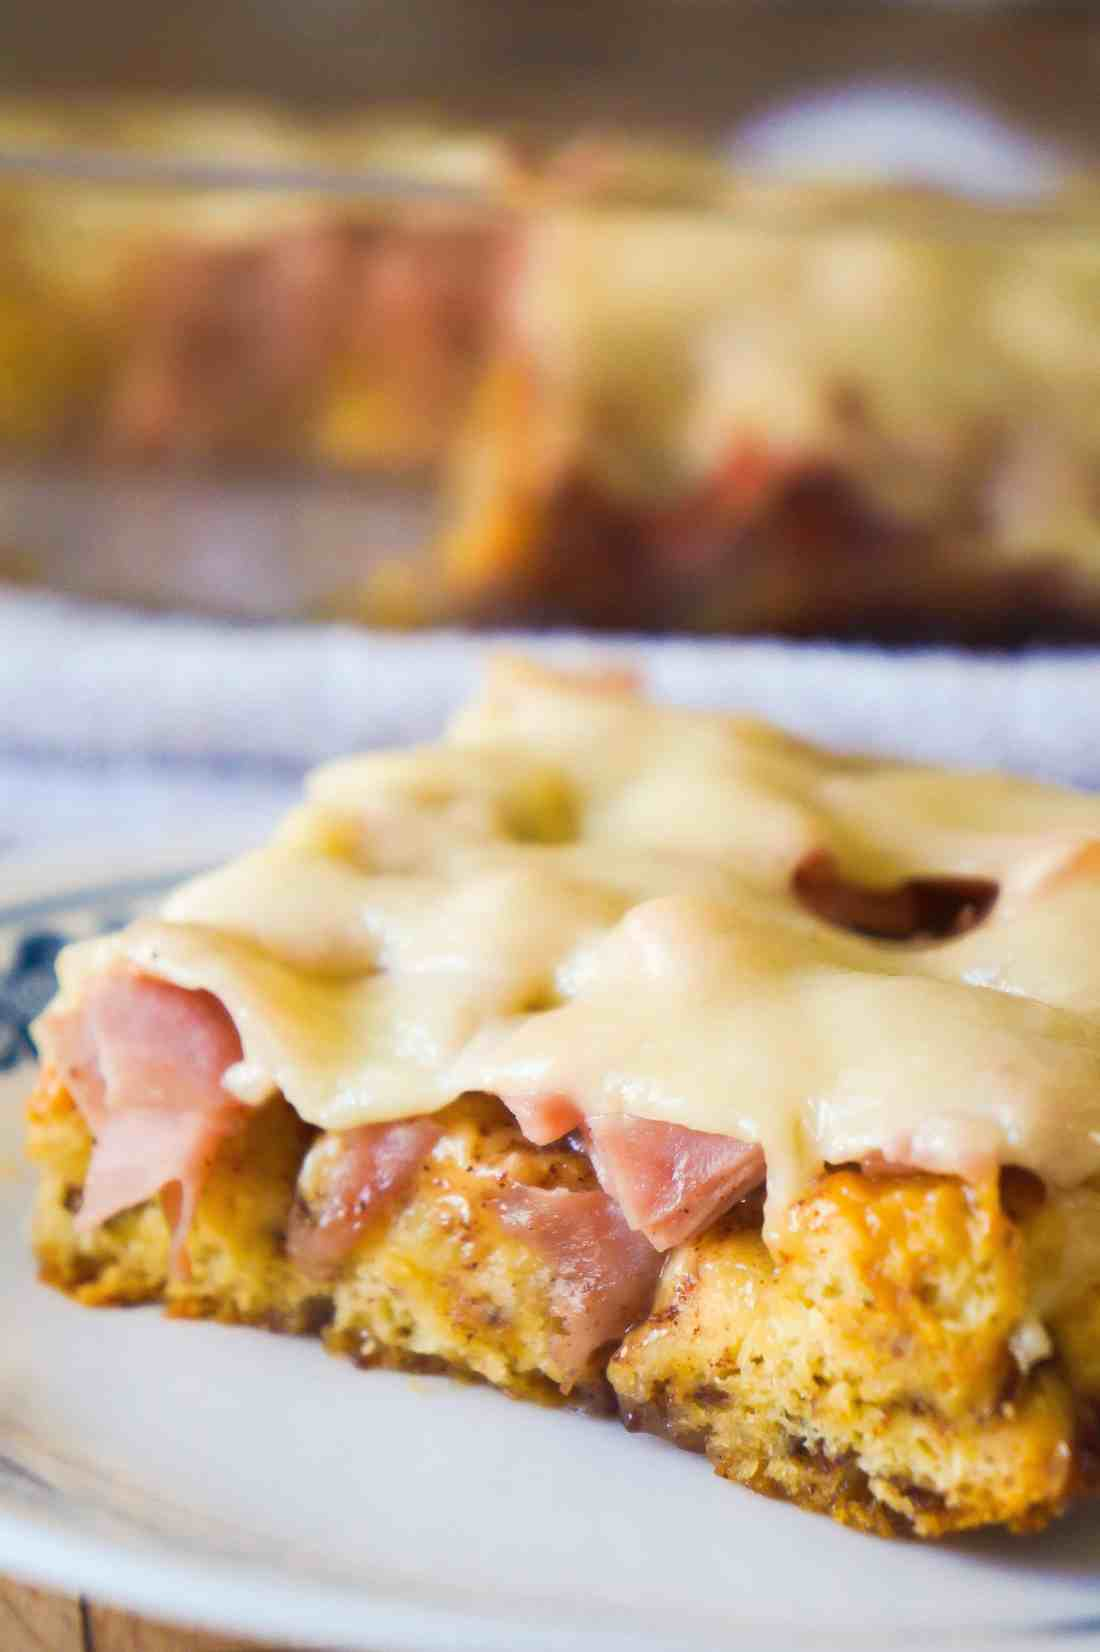 Monte Cristo Breakfast Casserole is a sweet and savoury breakfast dish using Pillsbury cinnamon rolls.